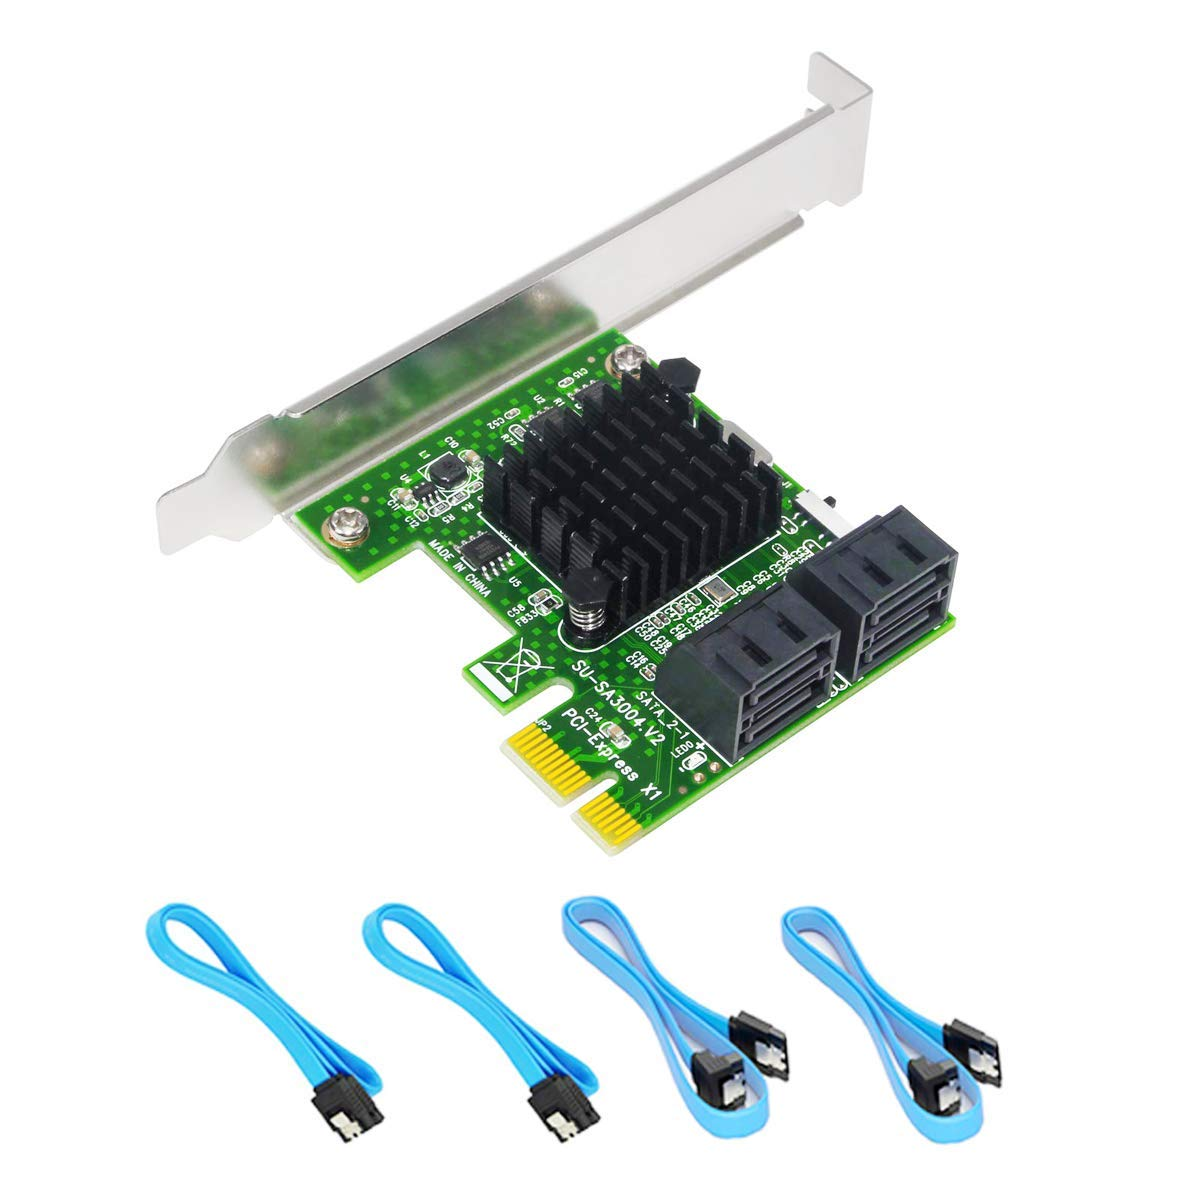 Ziyituod SATA Card,4 Port 6 Gbps SATA Controller PCI Express Expression Card with Low Profile Bracket,Boot as System Disk,Support 4 SATA 3.0 Devices,Built-in Adapter Converter for Desktop PC